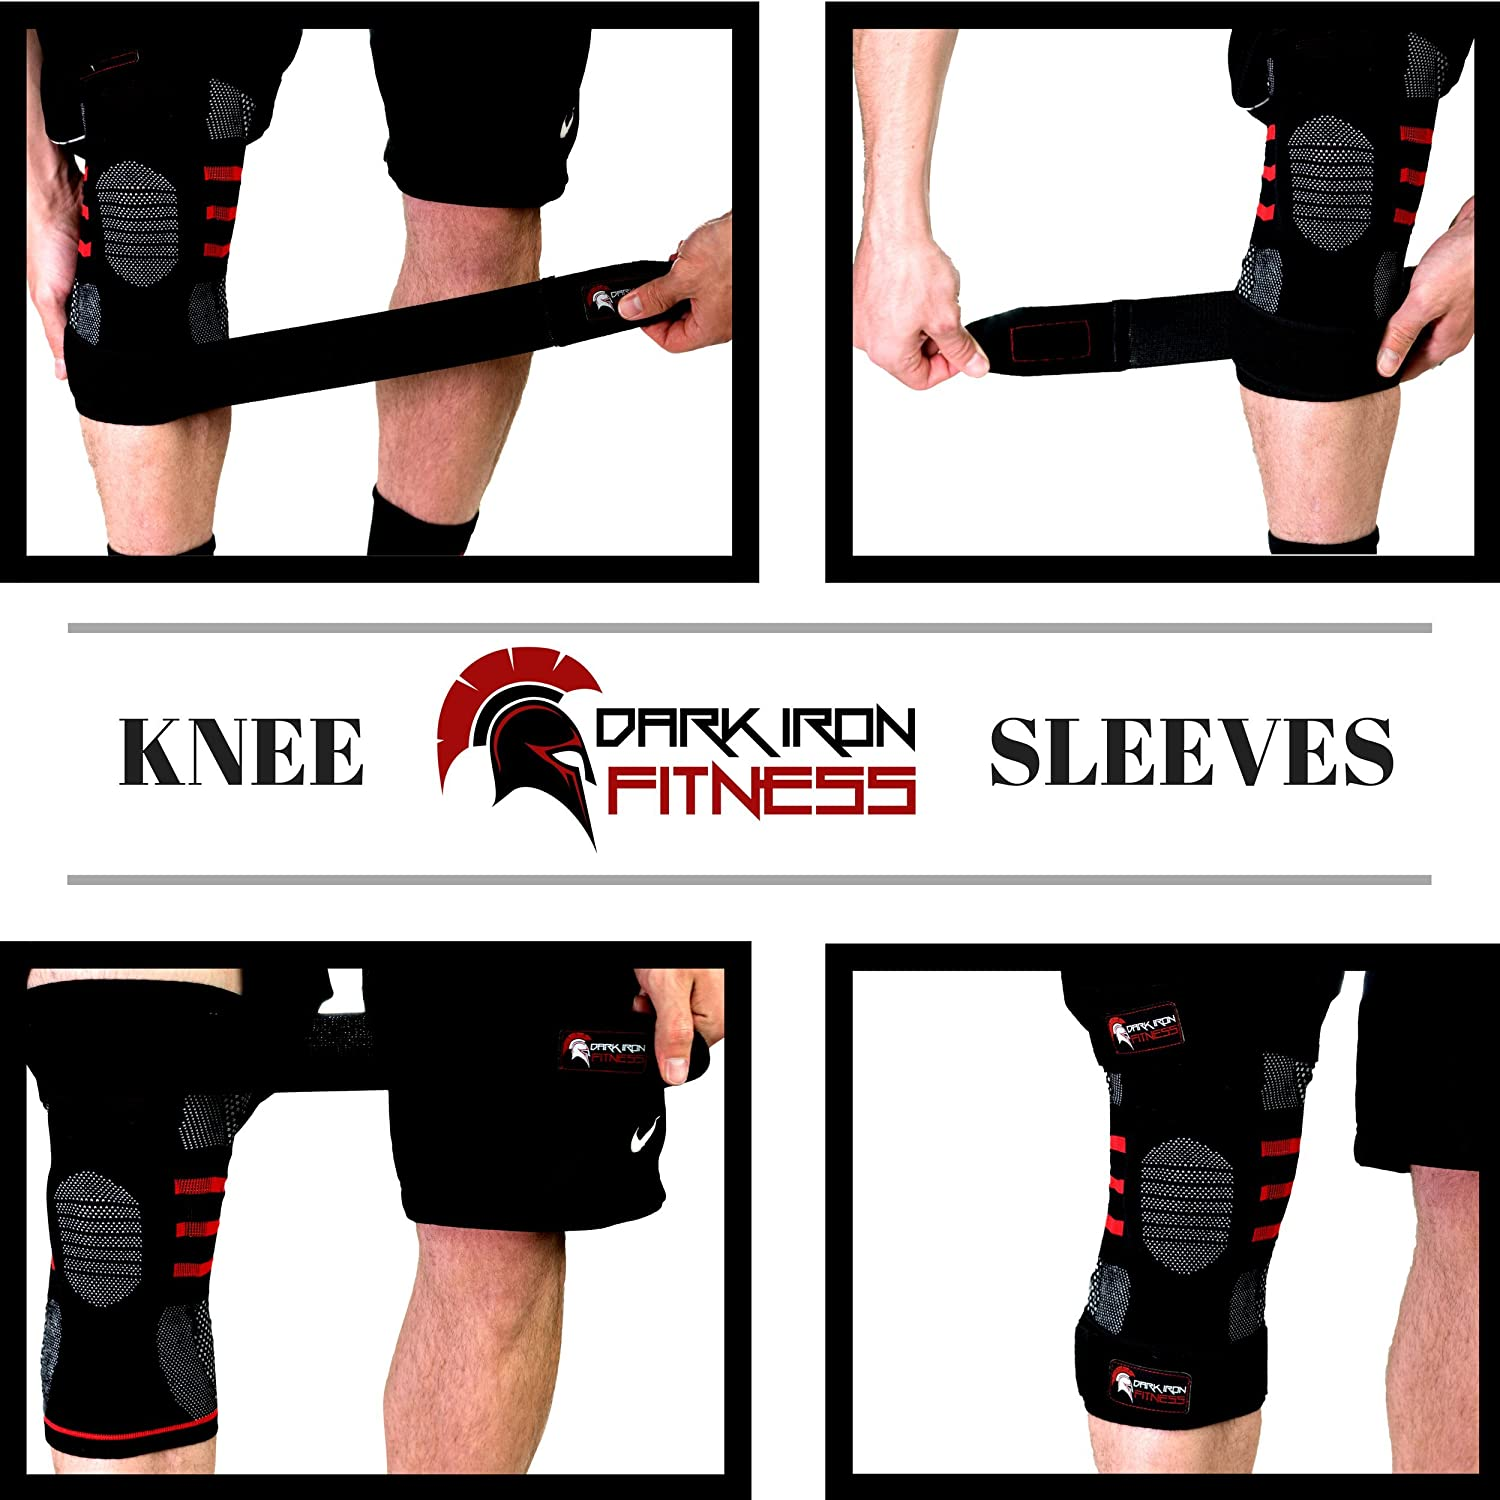 The Rules of Safe Lifting - Dark Iron Fitness Knee Sleeves